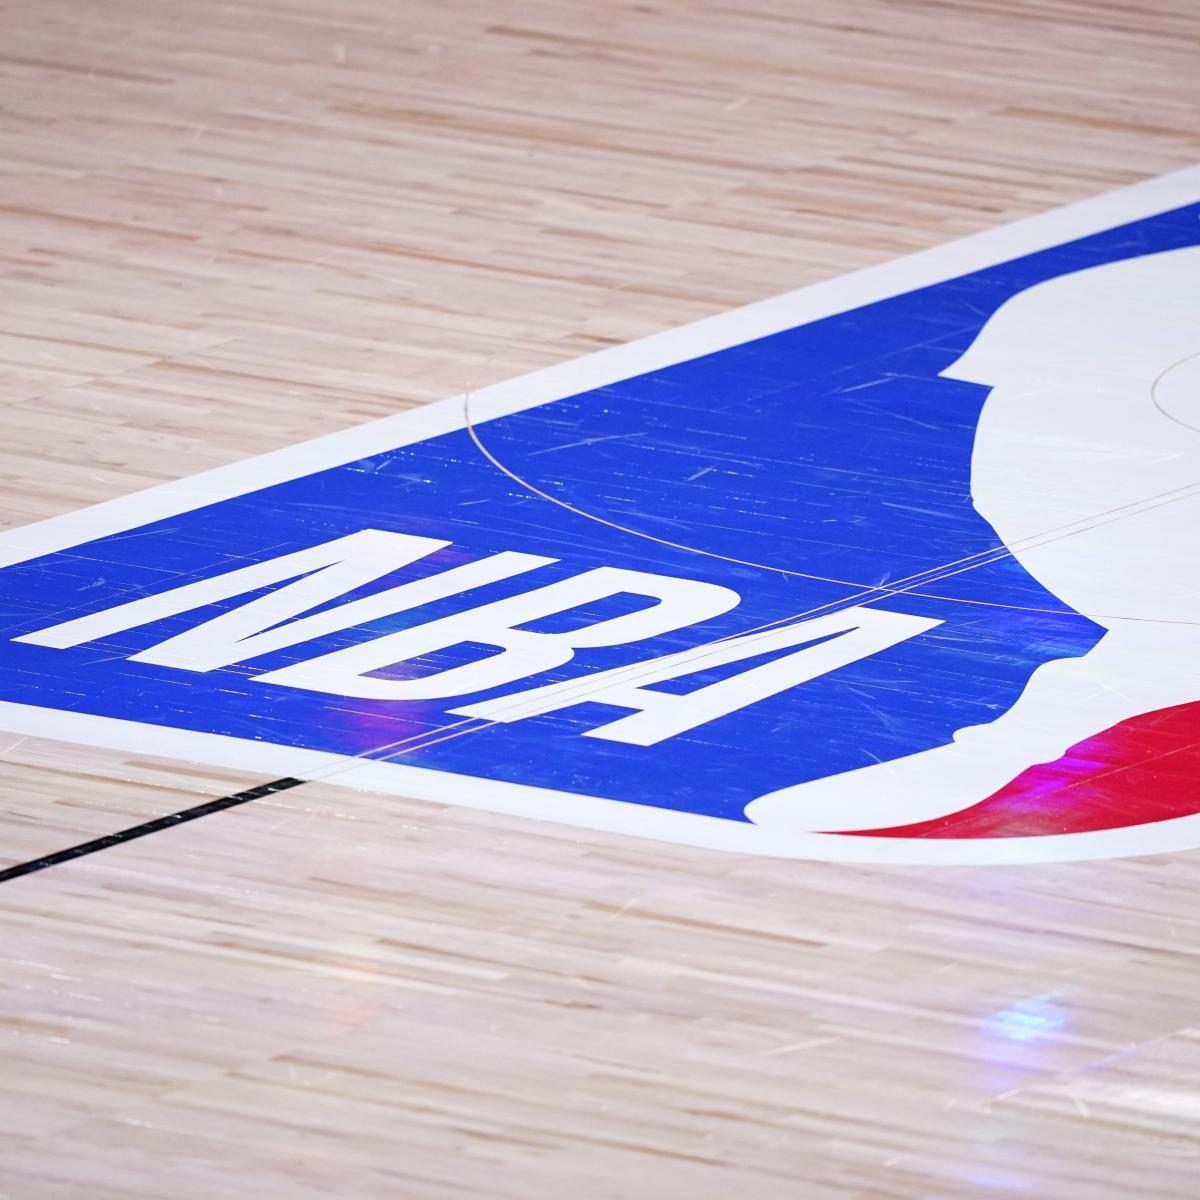 NBA, NBPA Extend CBA Termination Deadline to Nov. 6 Amid Ongoing Talks